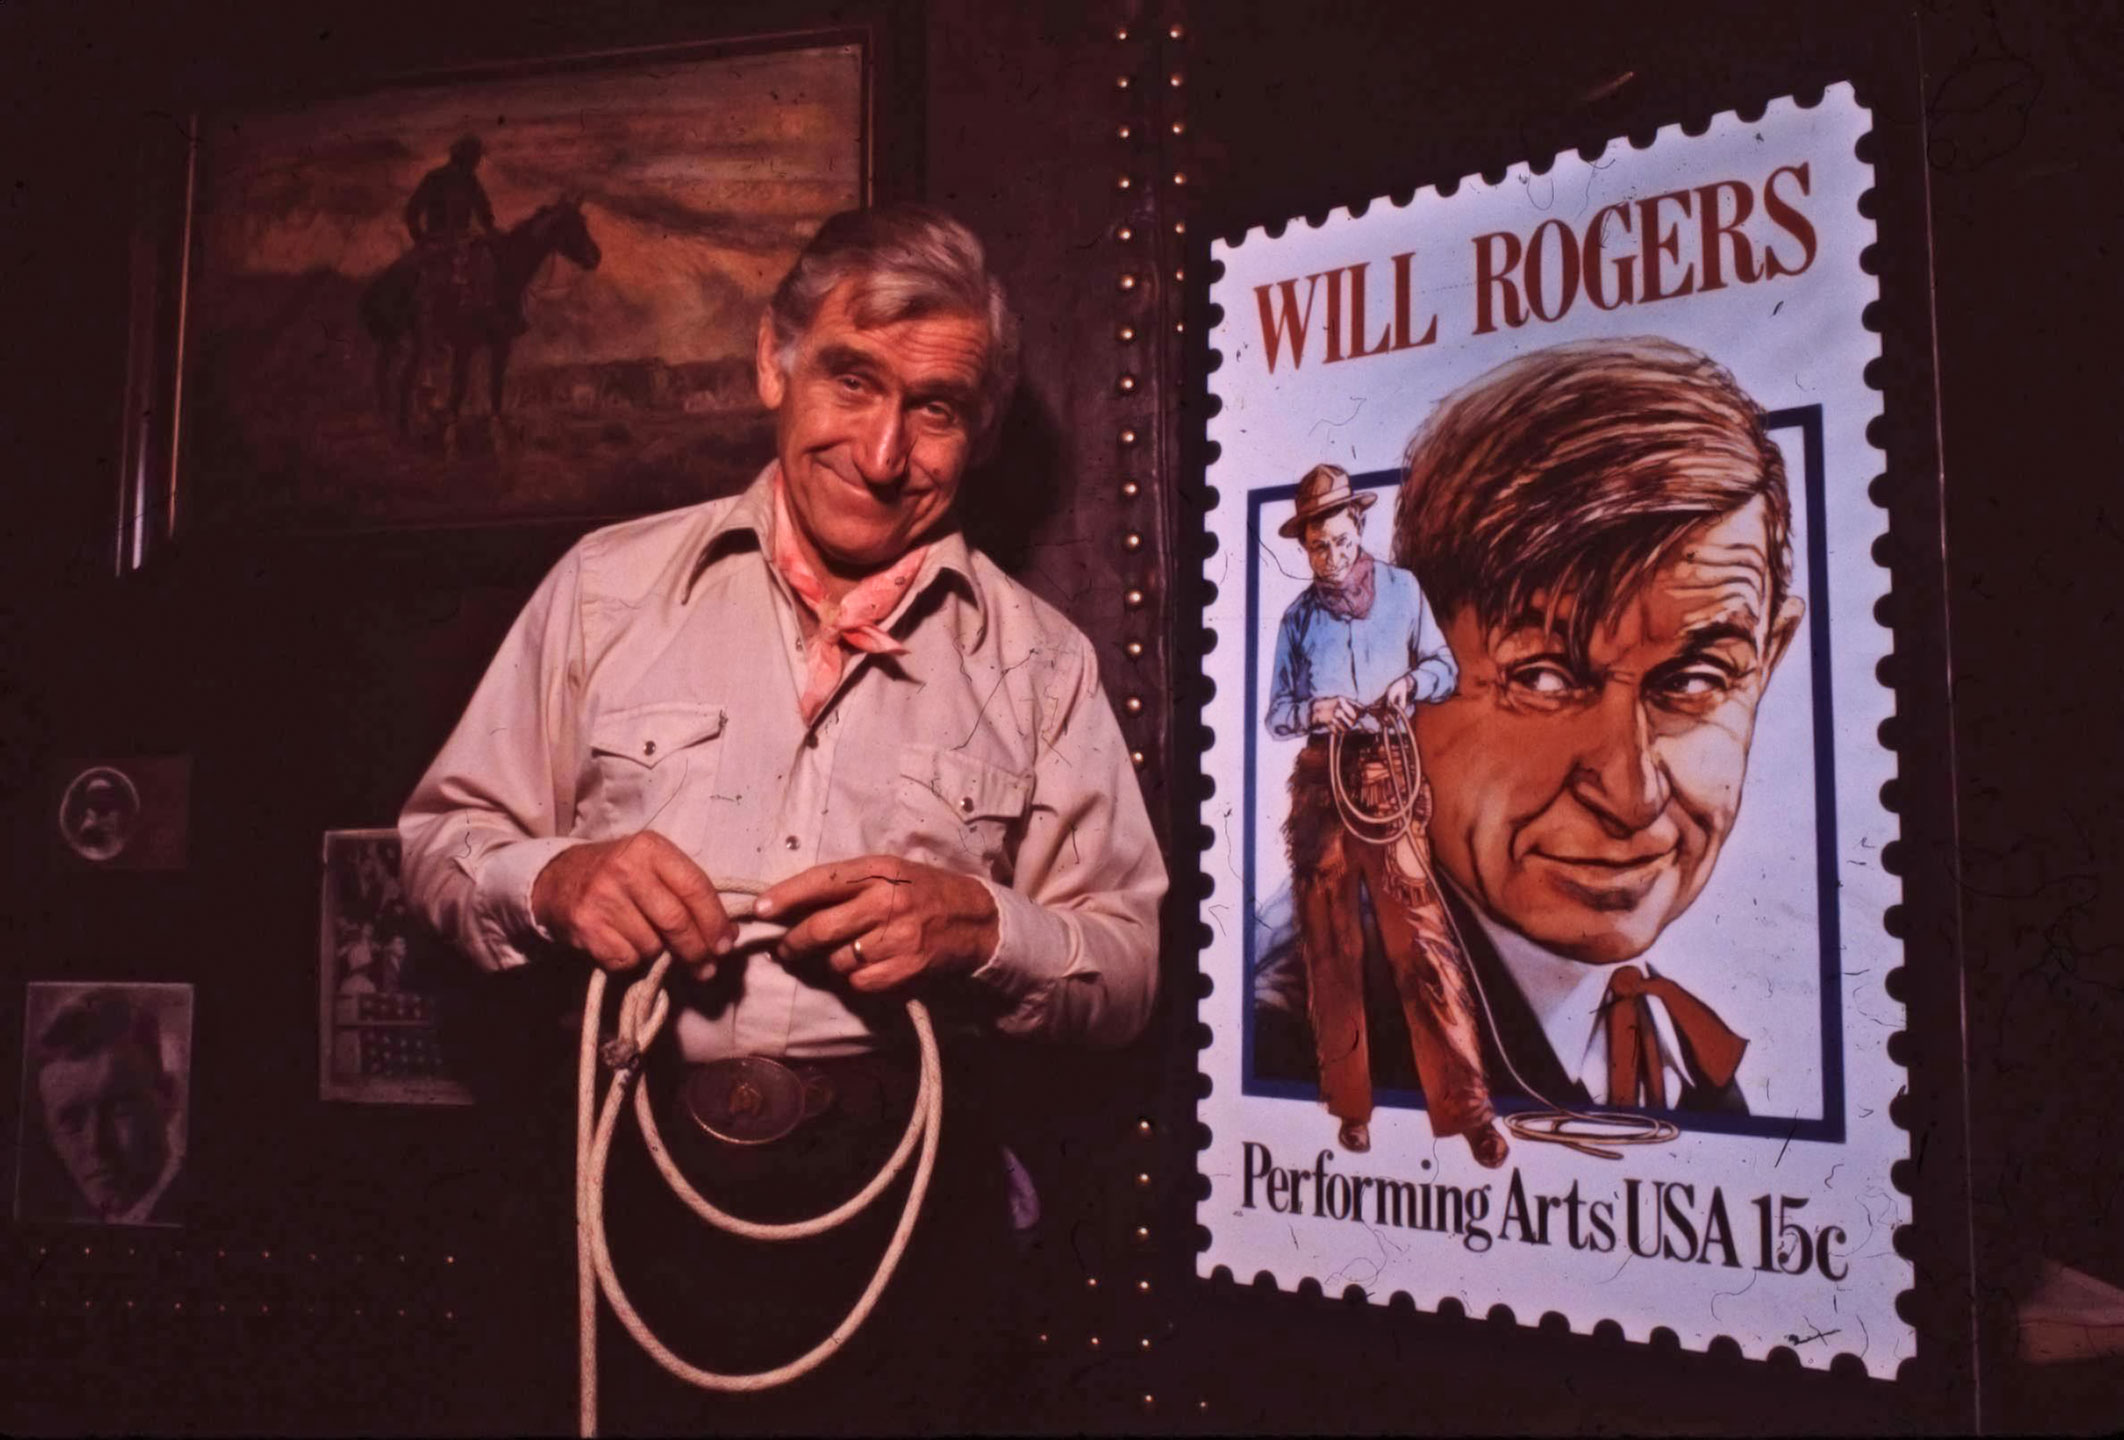 Actor James Whitmore dressed like a cowboy with a white shirt, patterned neck scarf, dark pants and large oval belt buckle. He holds a lasso. He is in character for the play Will Rogers USA, wherein he play the title role.